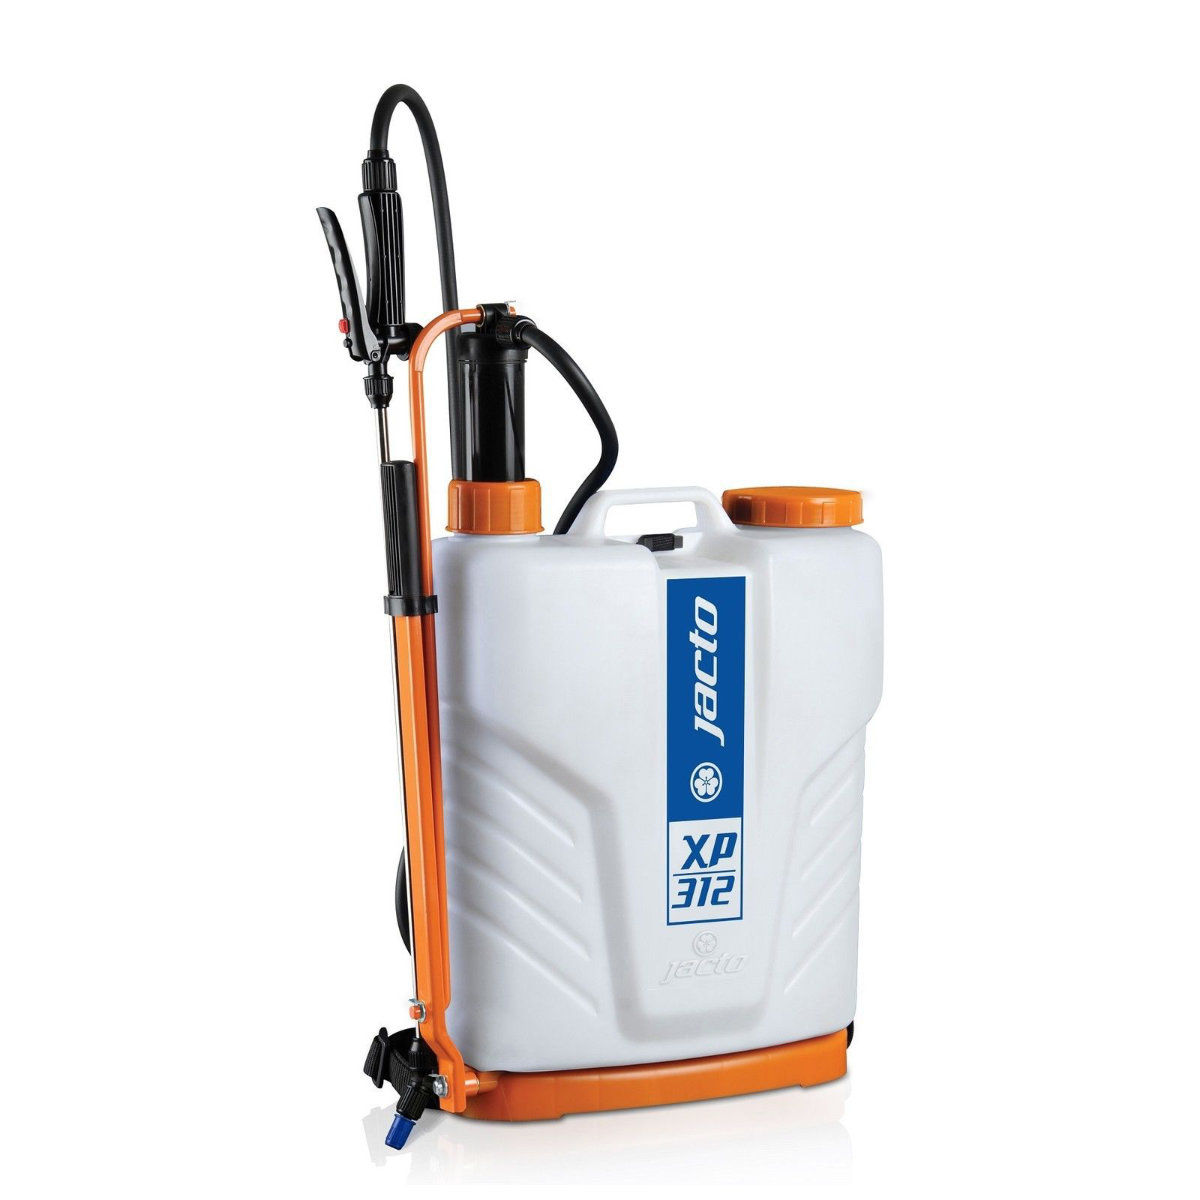 XP 312 Backpack Sprayer